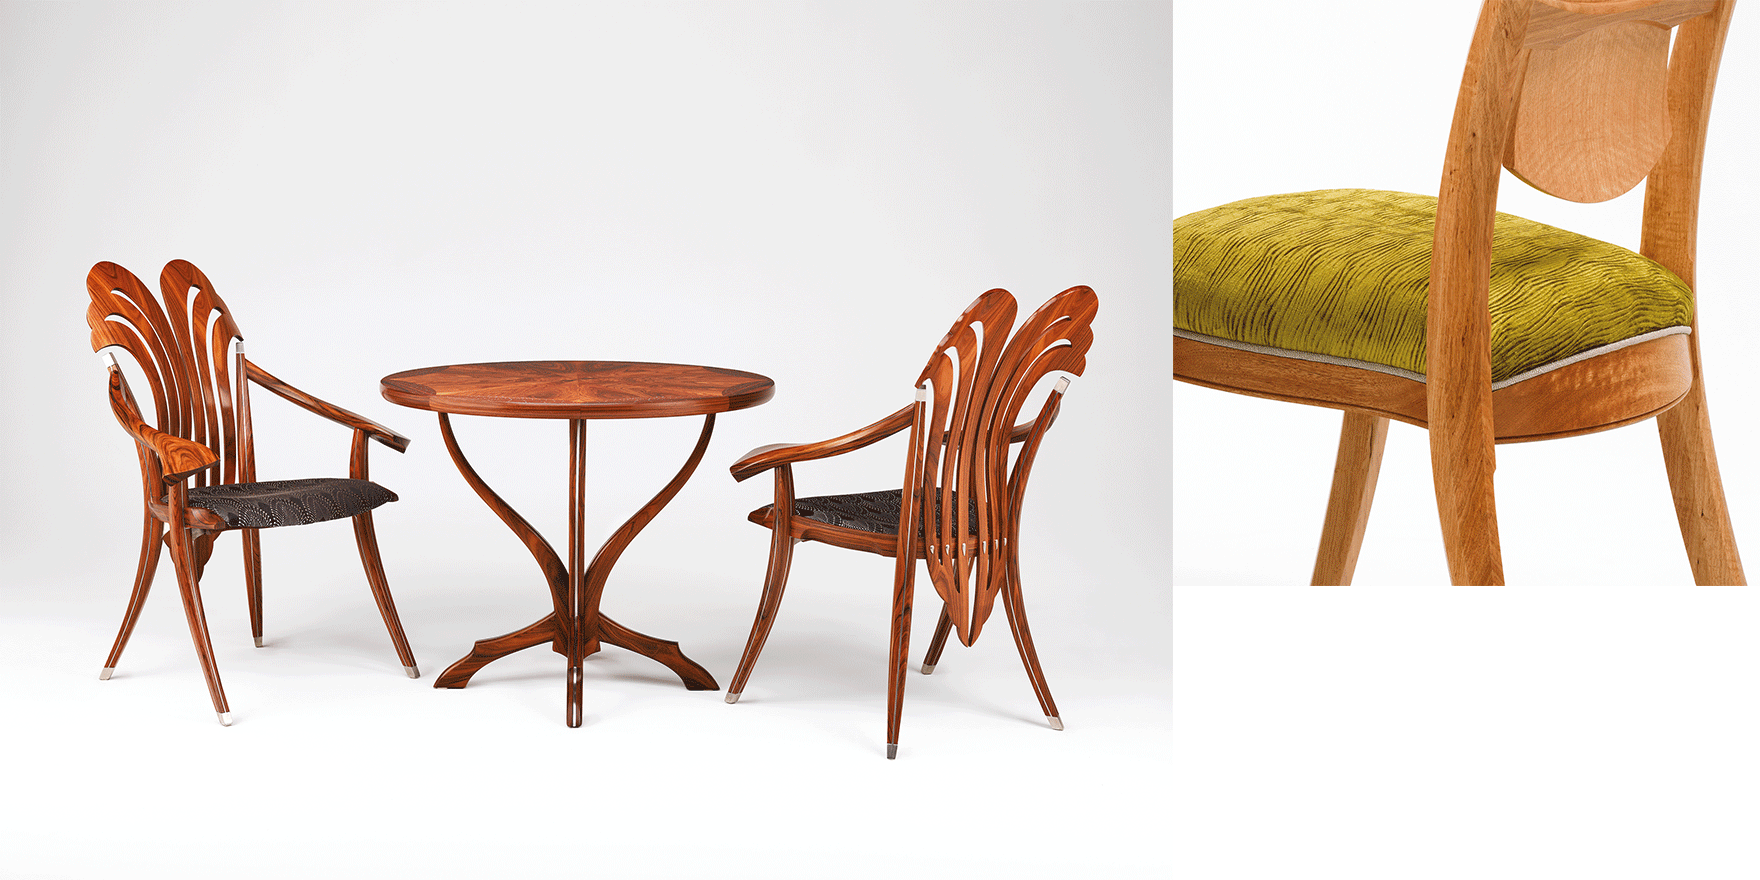 Combination of handmade table, chairs furniture from Adelaide designer